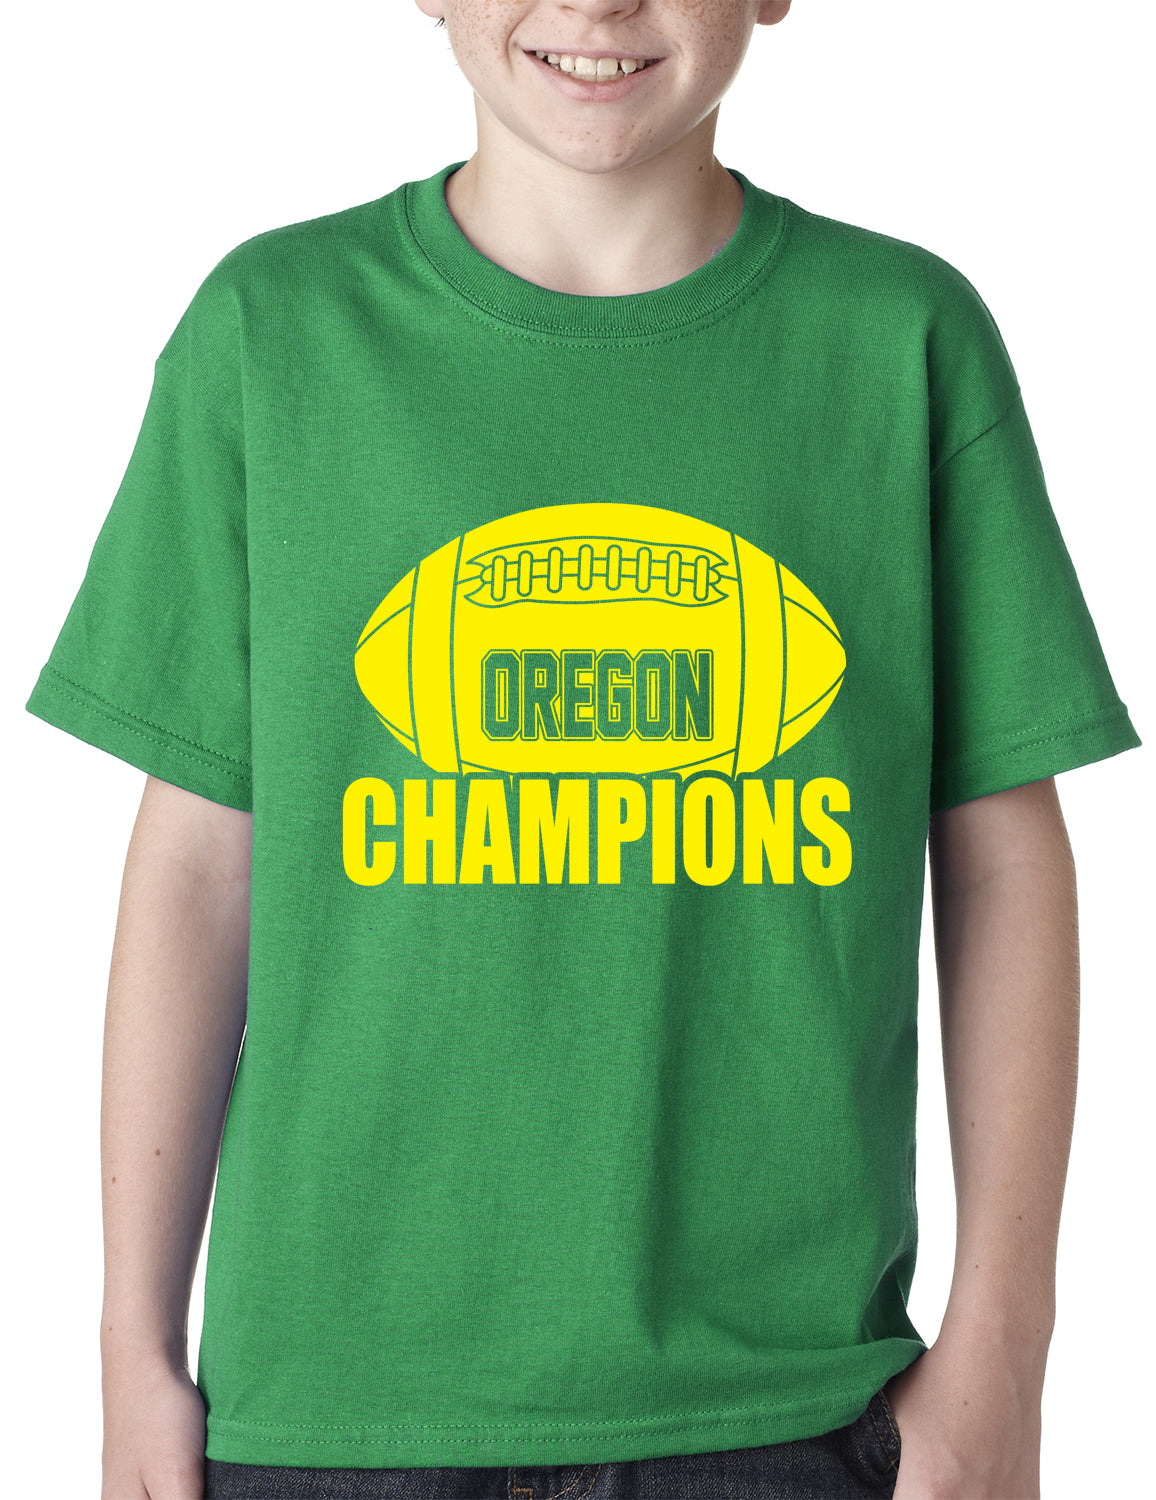 Oregon Football Champions Kids T-shirt